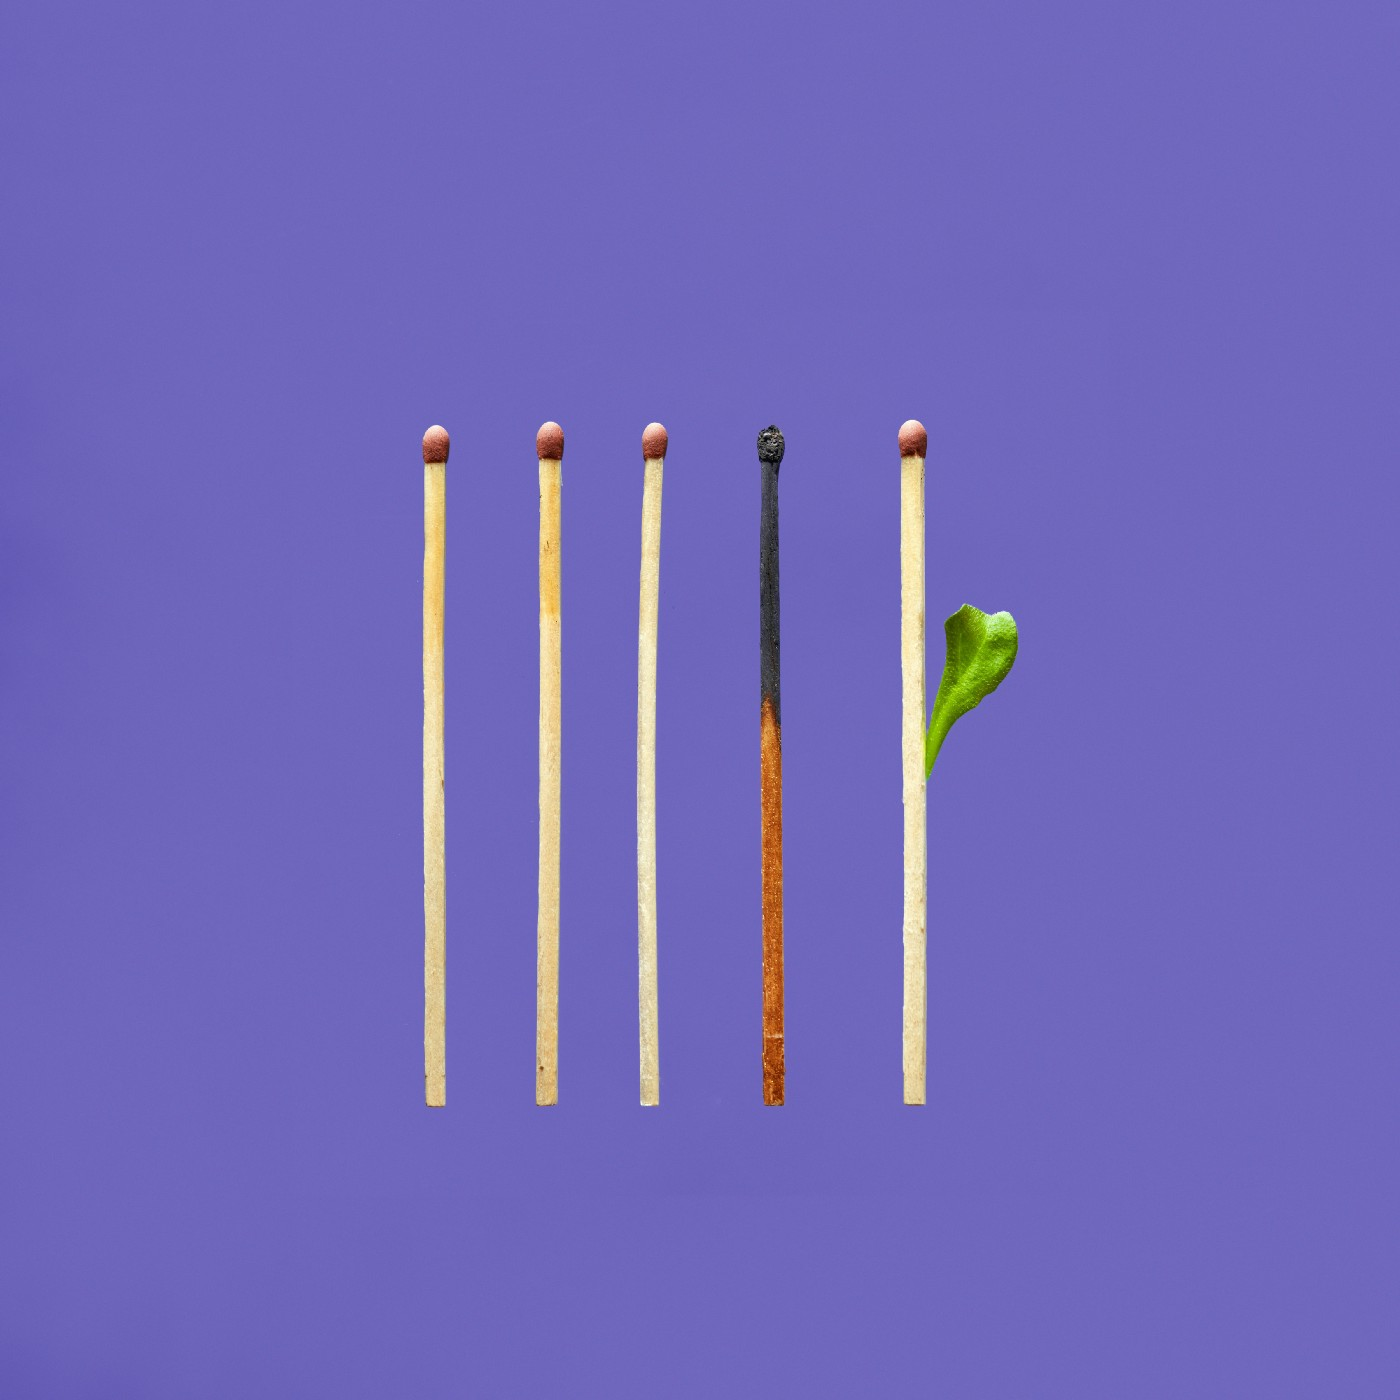 Some unlit matches and a burnt one. A new match with a leaf sprouting out of it.